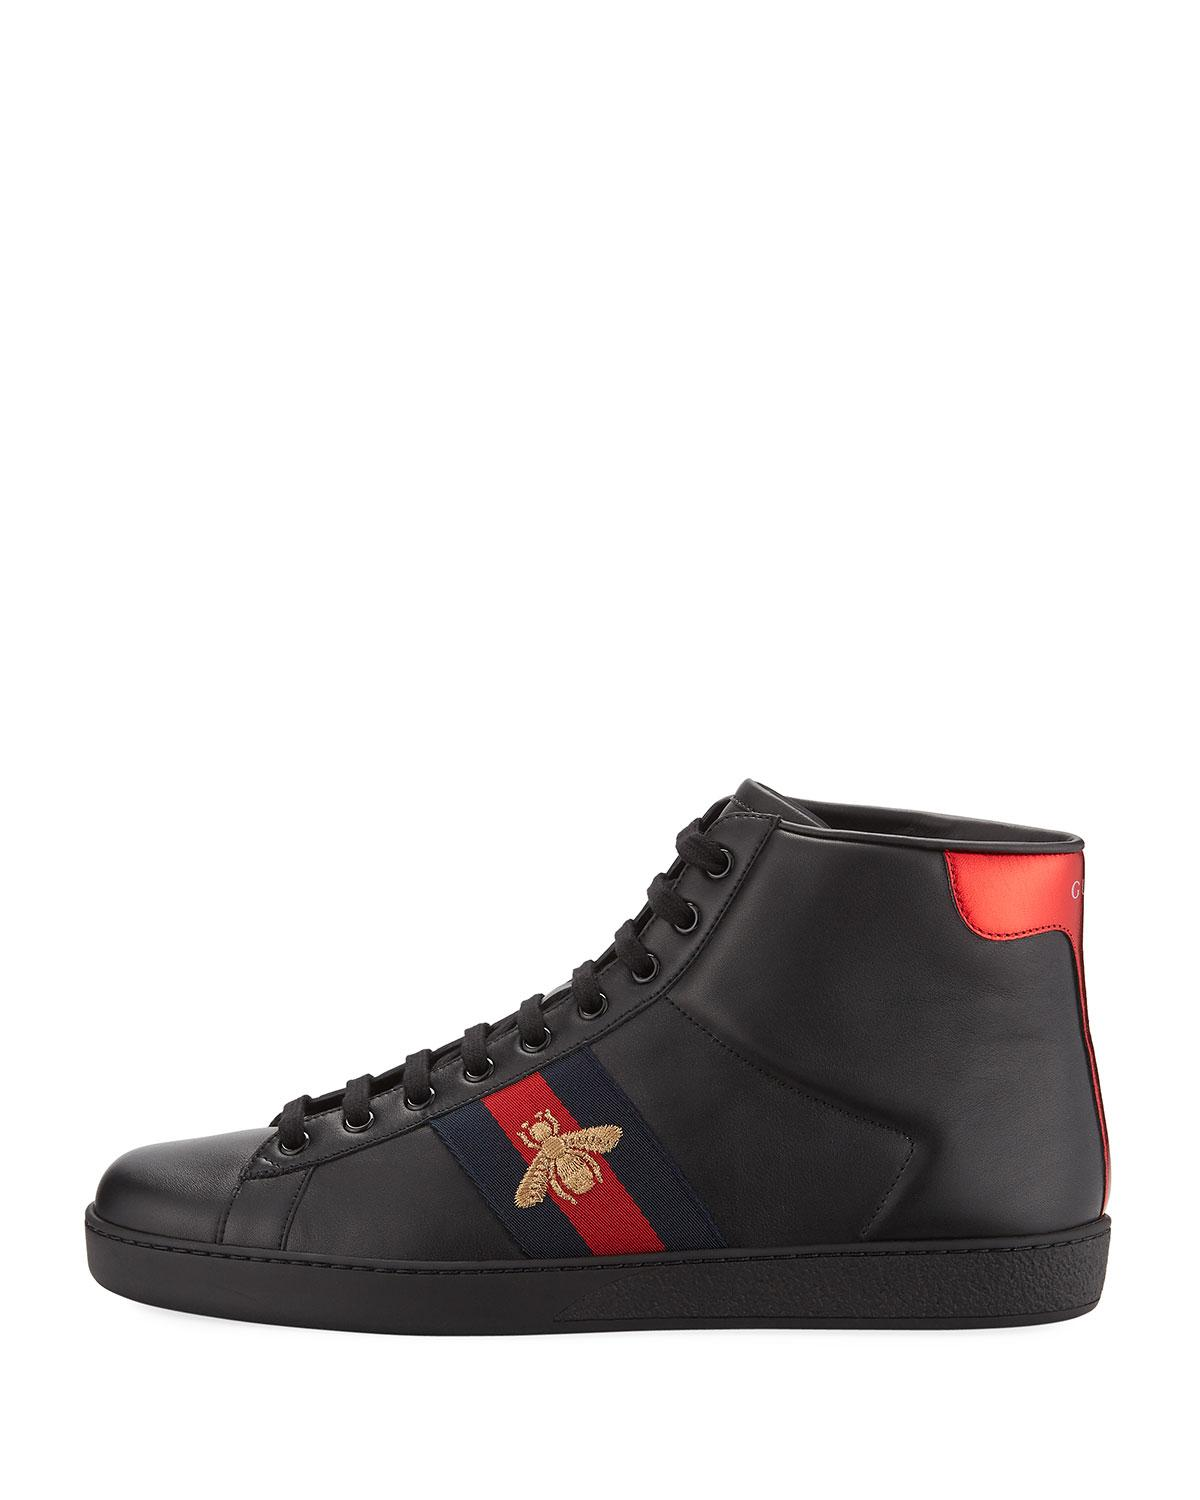 Gucci Leather Ace High-top Sneaker in